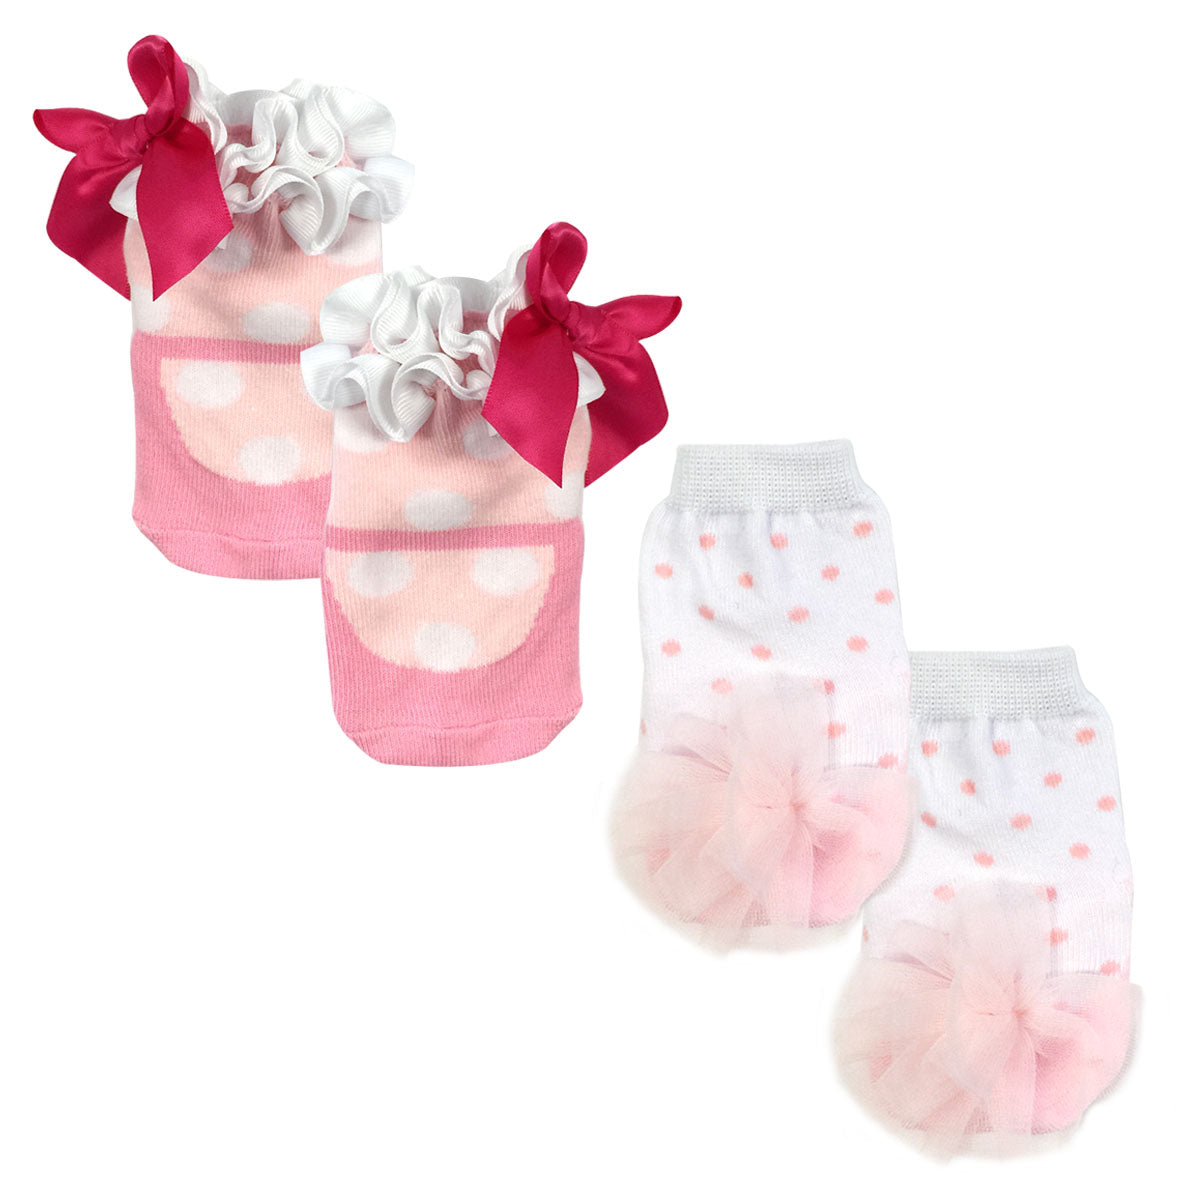 Wrapables Dottie Dot Non-Slip Ballet and Mary Jane Socks (Set of 2)